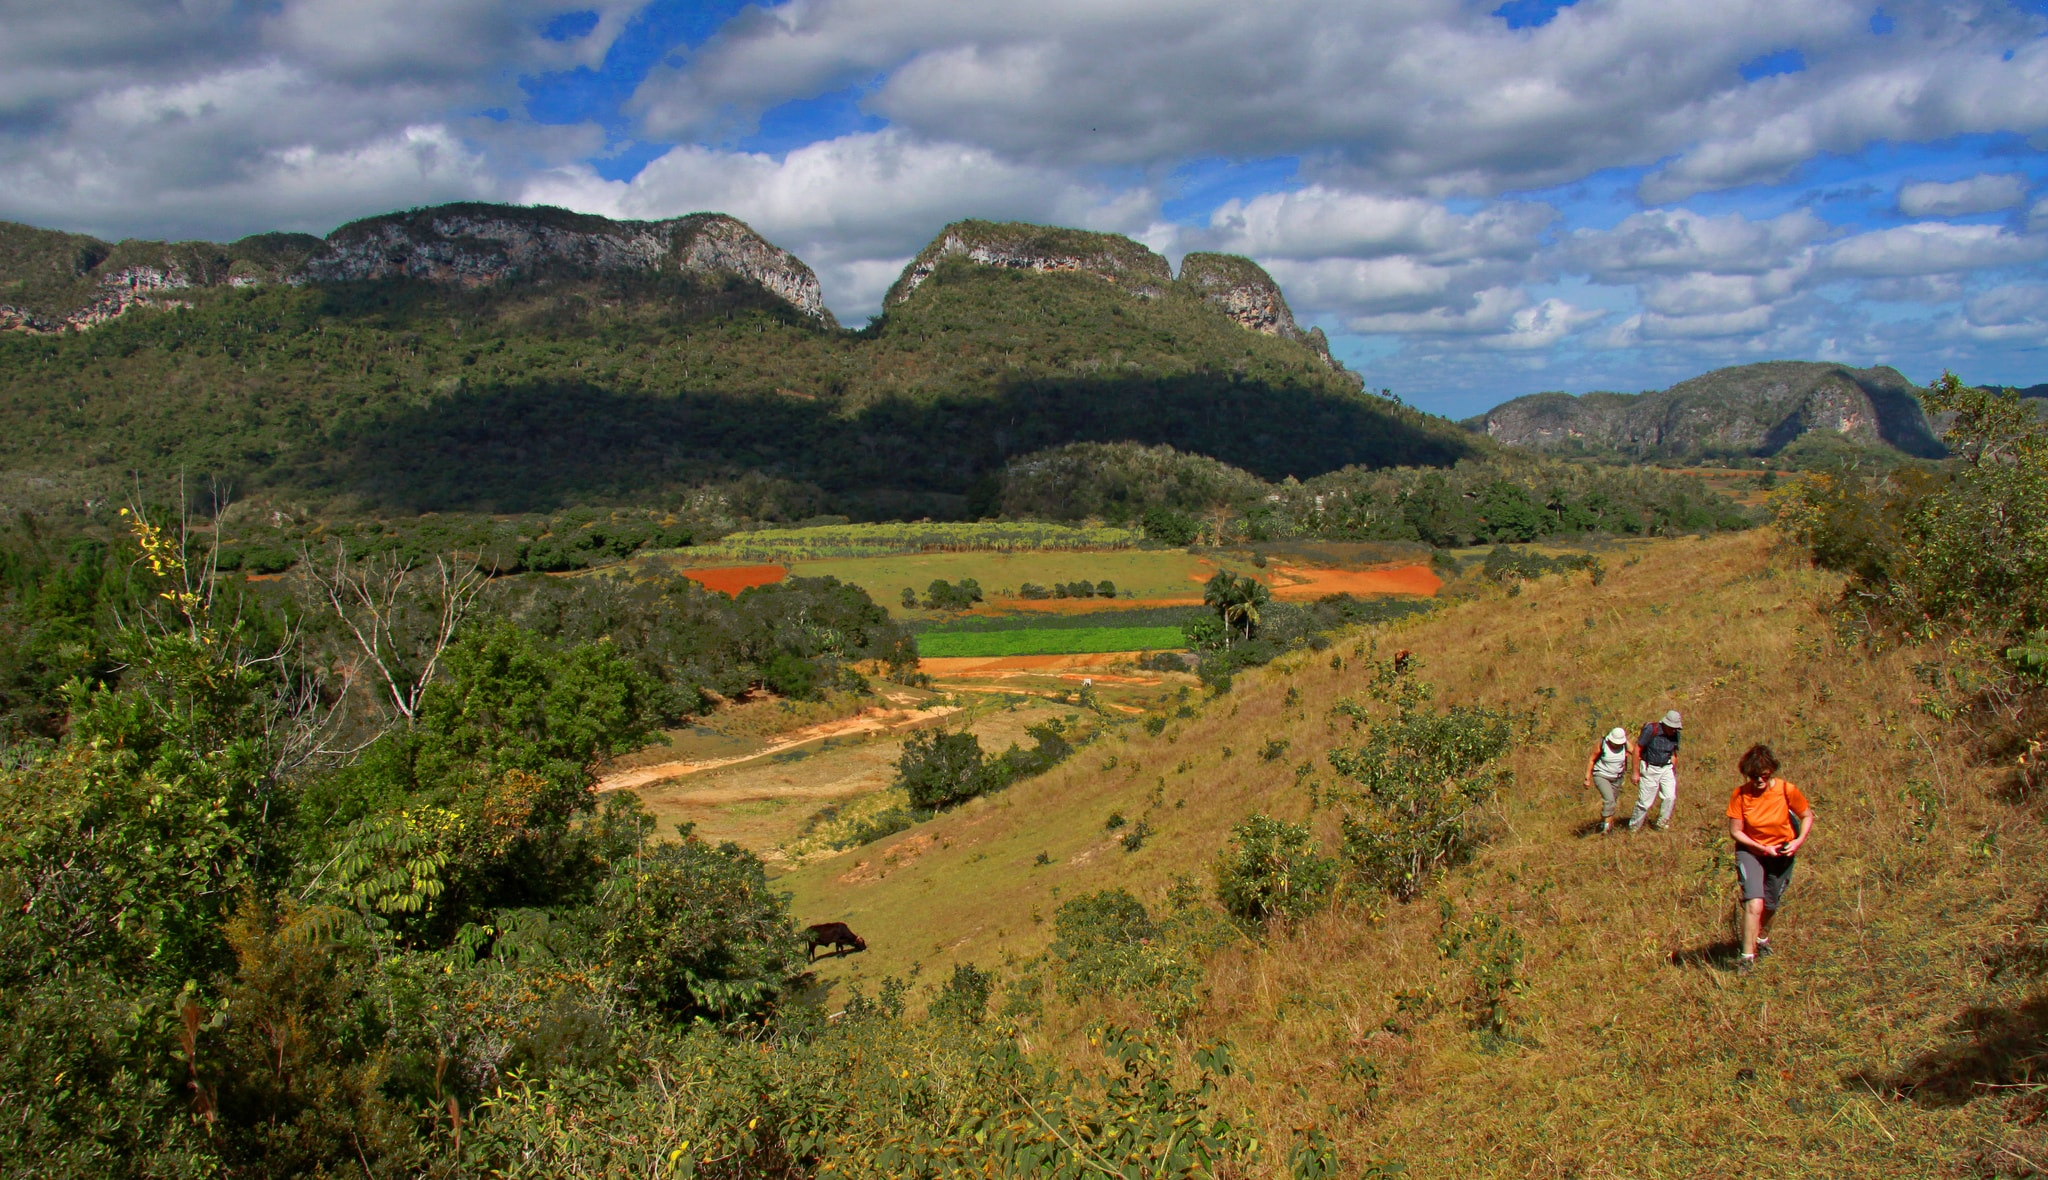 Clouds and grass-covered mountains in Vinales Cuba's 7 Wonders